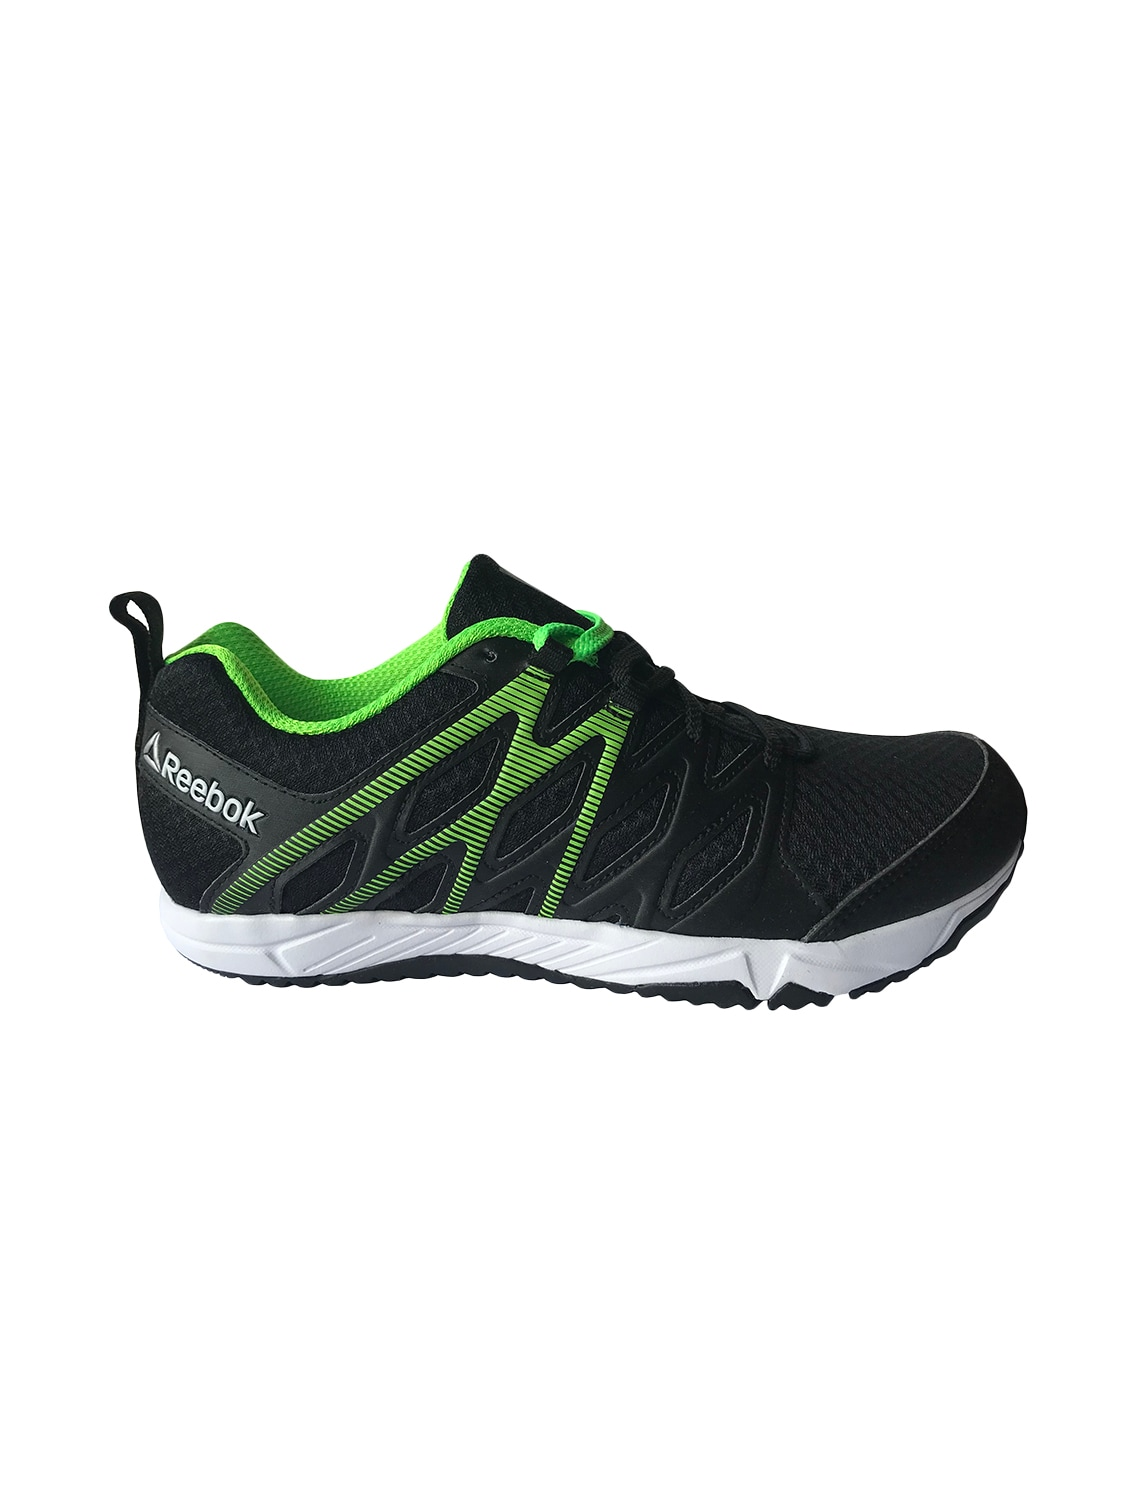 36c3bb95868 Buy Black Mesh Sport Shoe by Reebok - Online shopping for Sport Shoes in  India